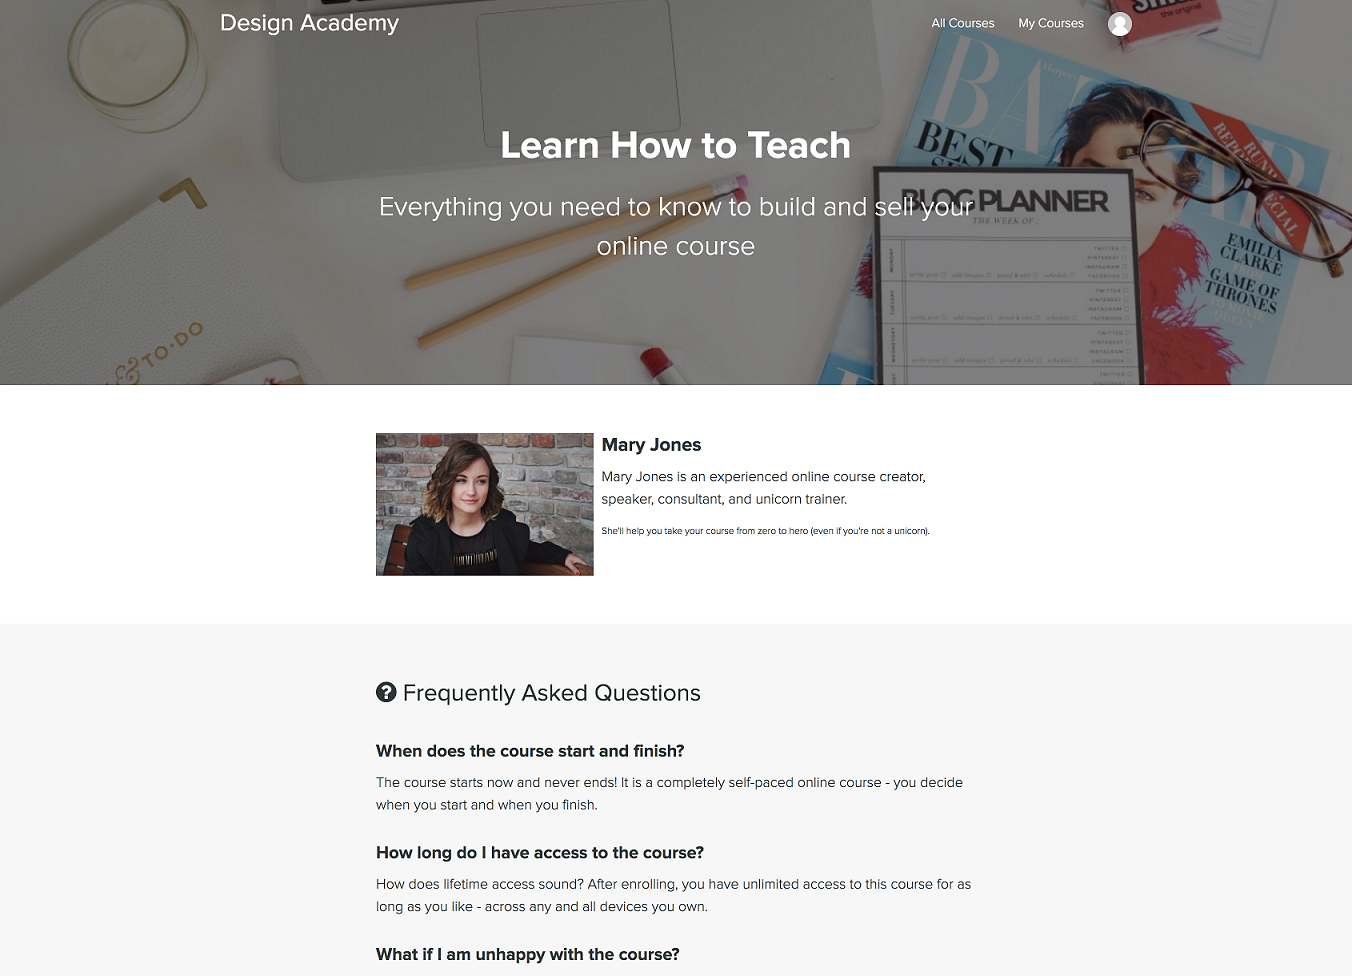 Learn_How_to_Teach___Design_Academy.png